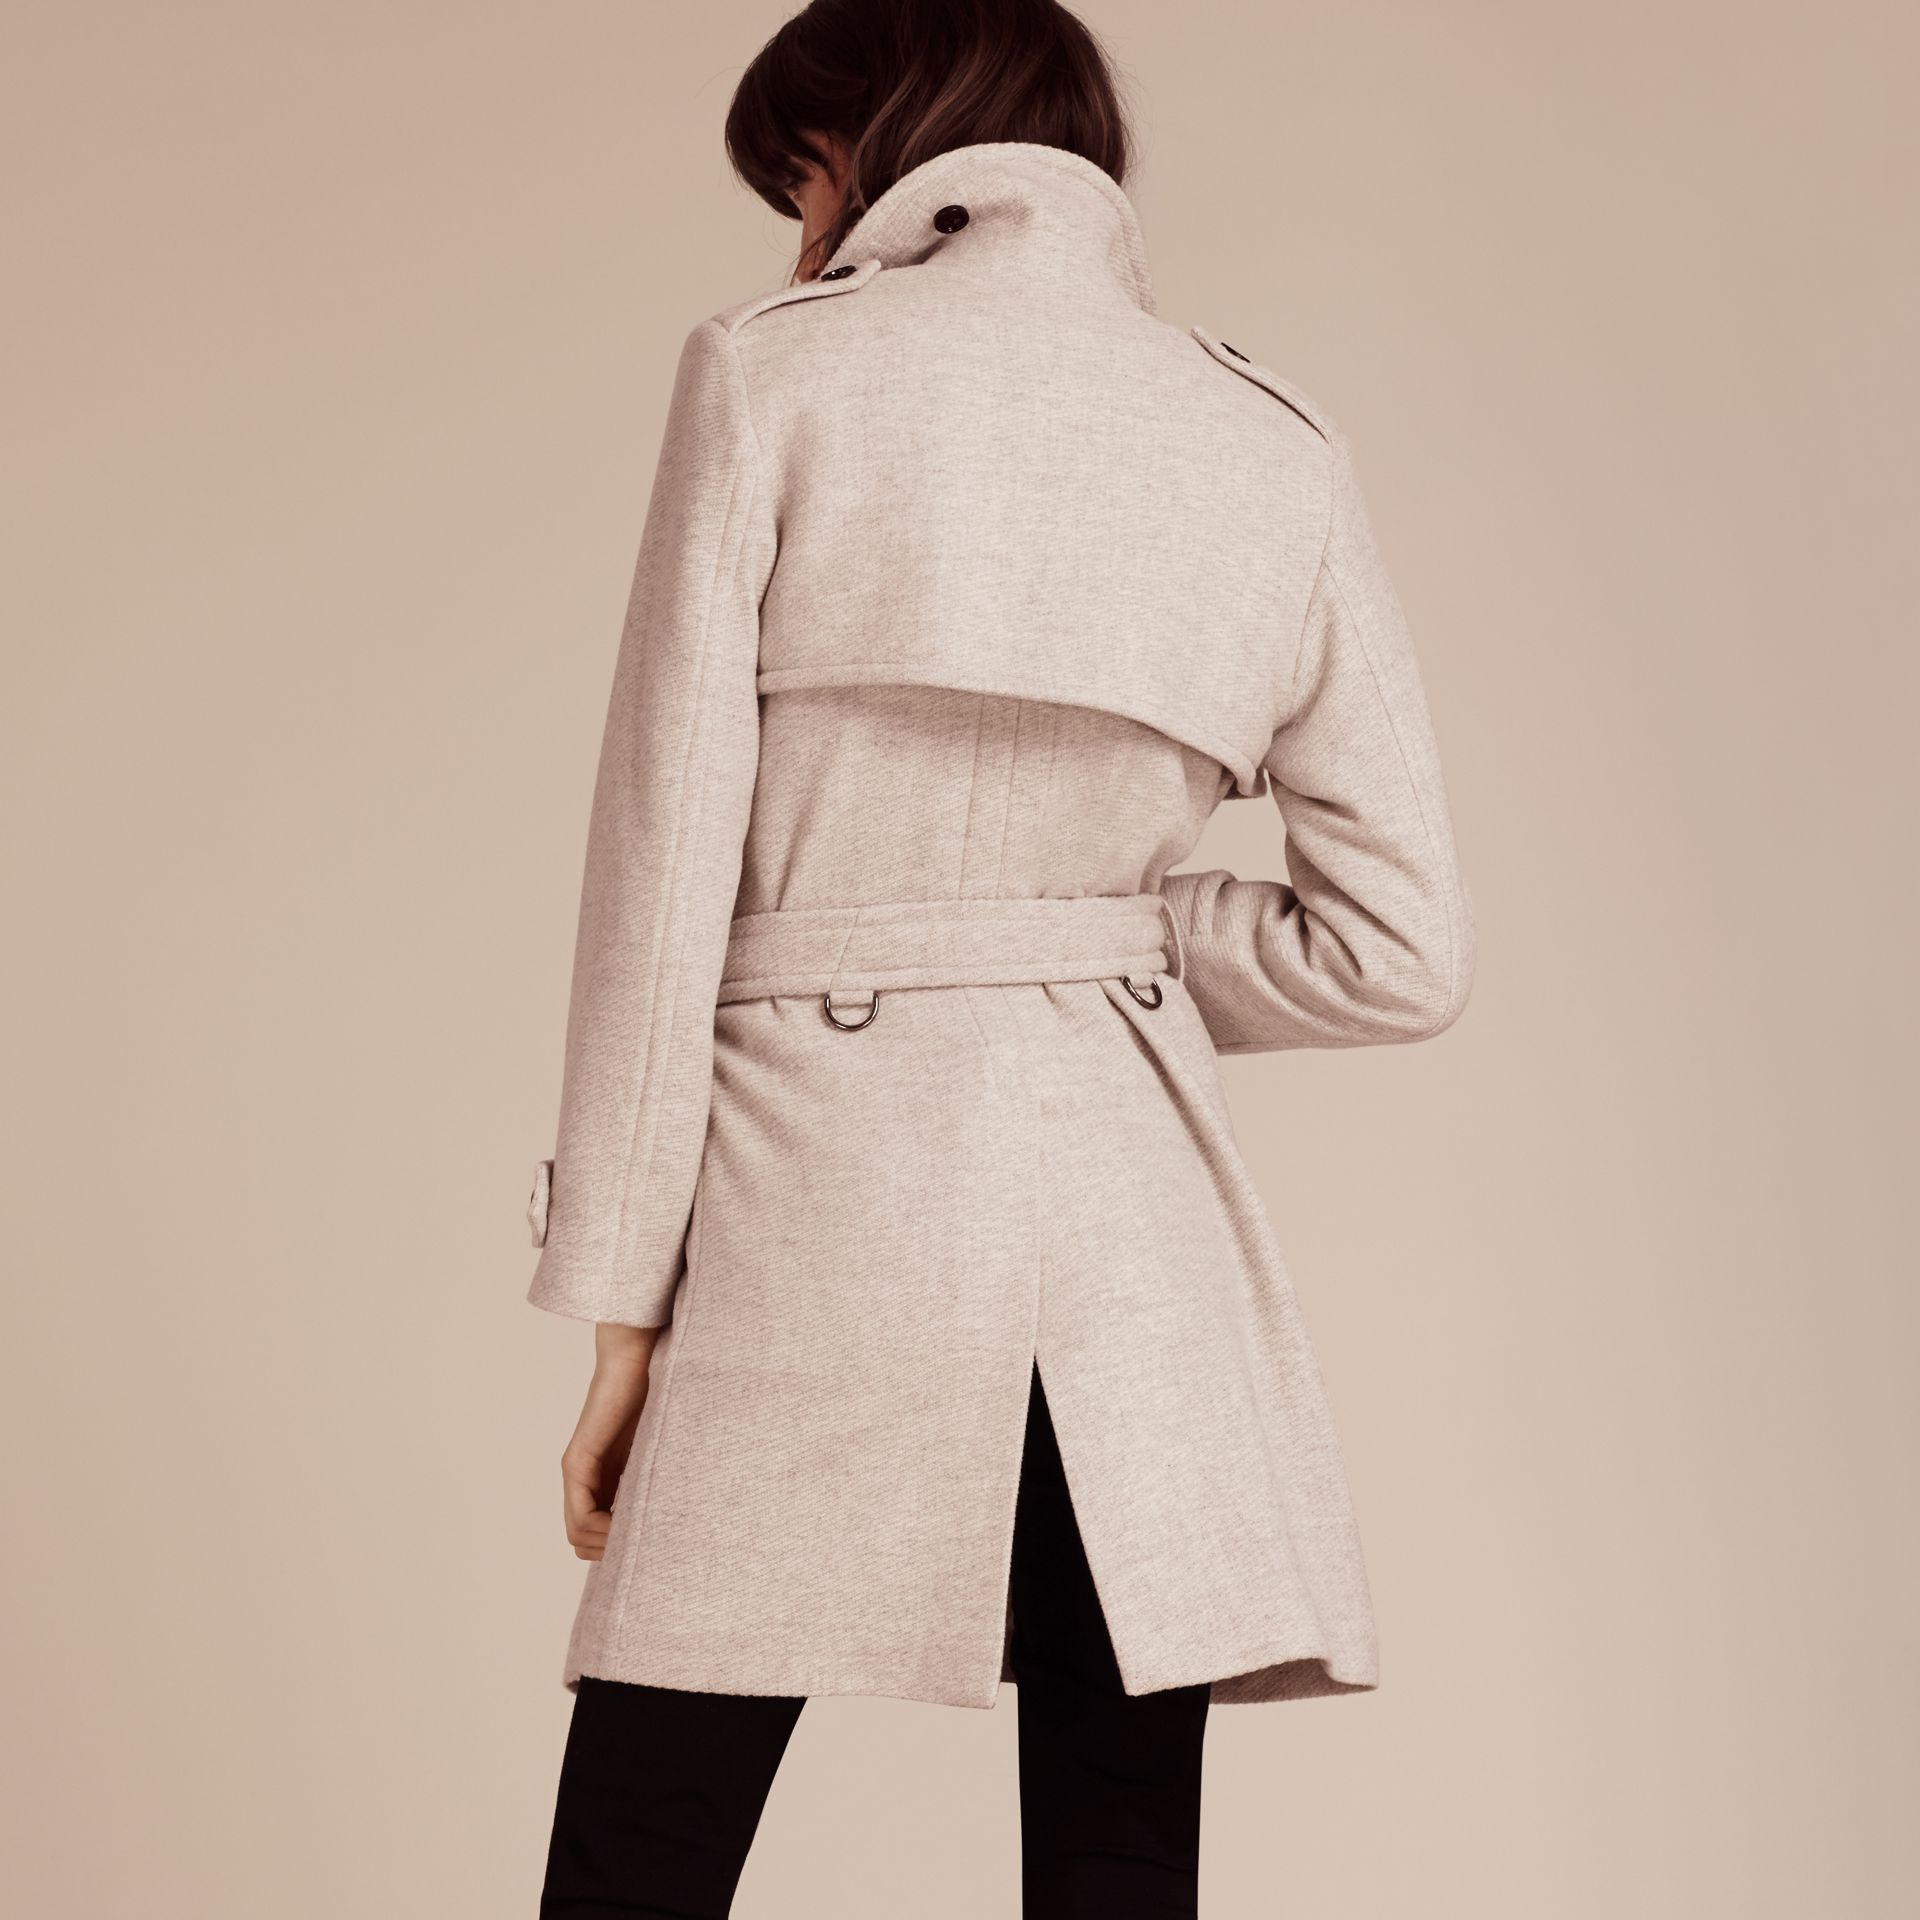 Blanc/gris Trench-coat portefeuille en cachemire - photo de la galerie 3